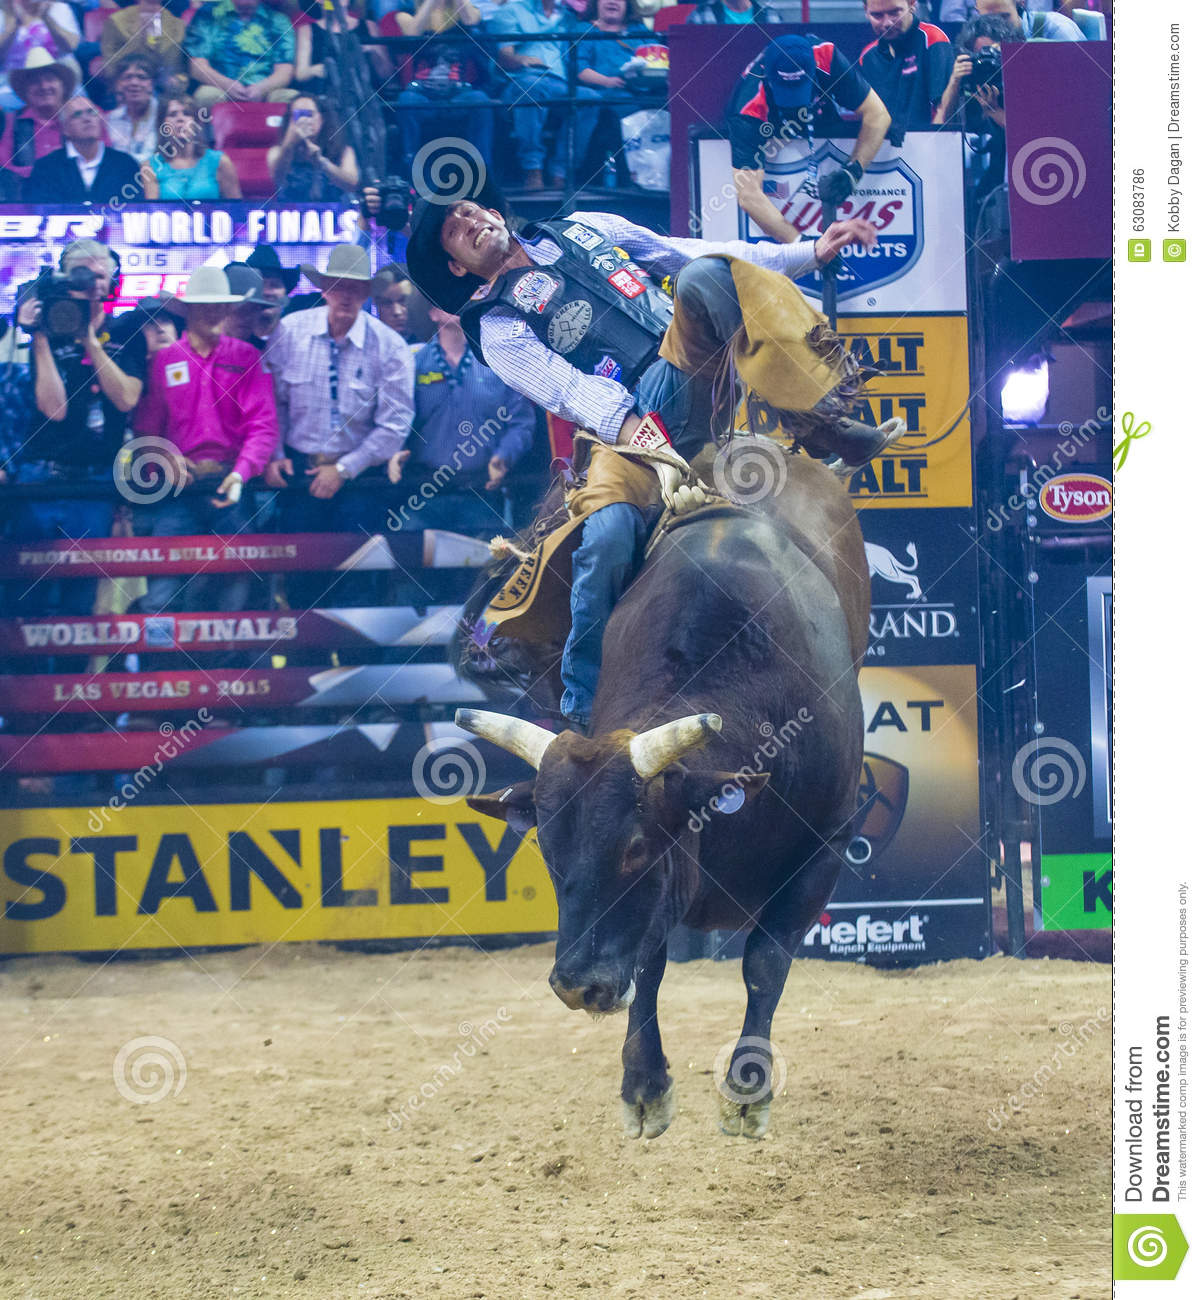 Pbr Bull Riding World Finals Editorial Photo Image Of